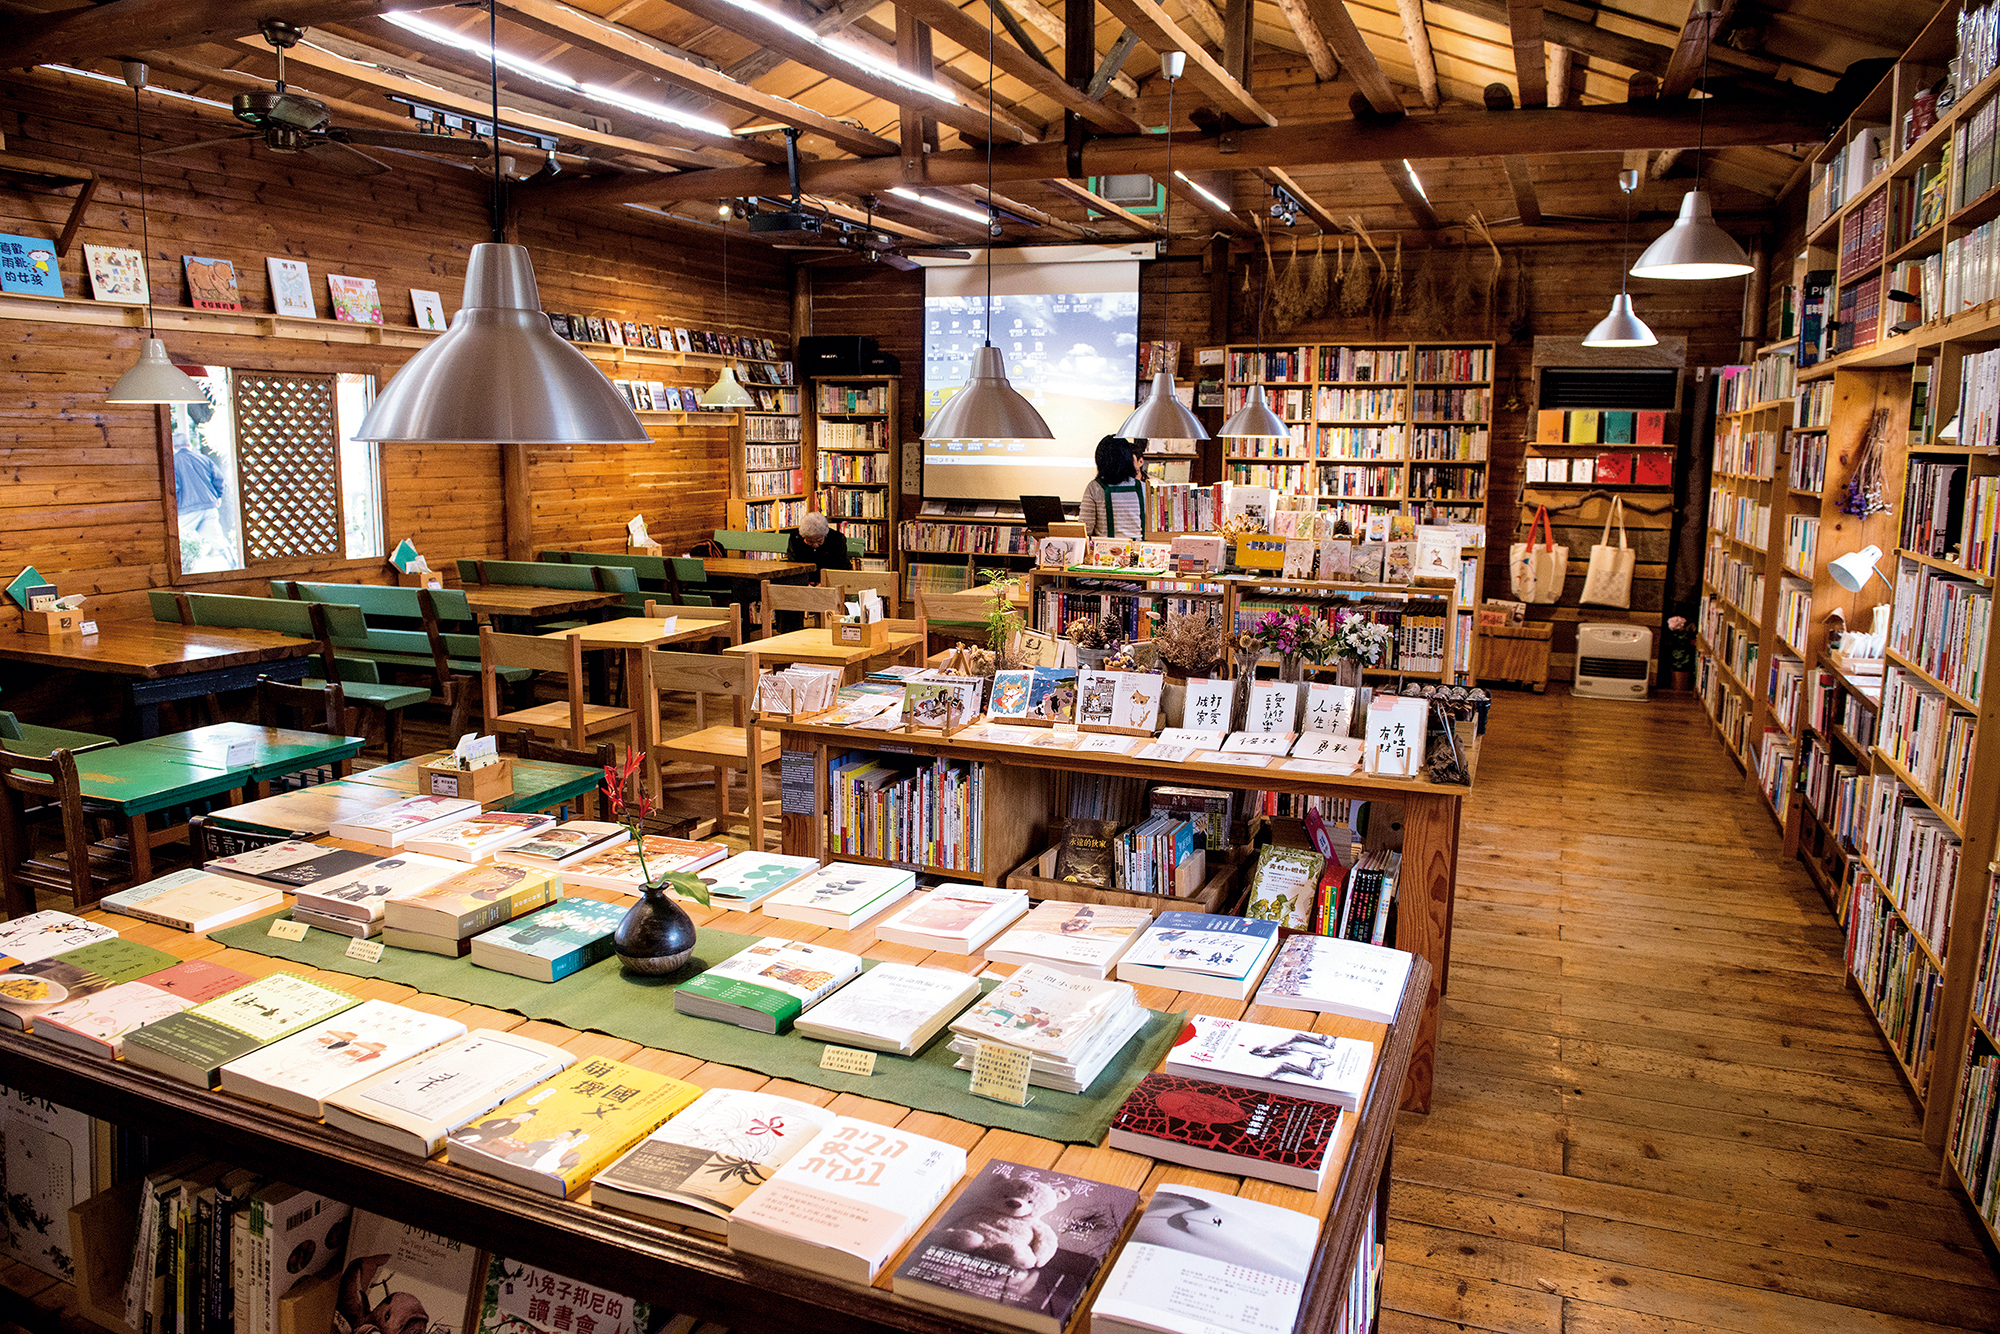 Lifestyle Bookstore, located in Taoyuan's Pingzhen District, is both a bookstore and a place for locals to mingle, as they used to in neighborhood groceries. (photo by Chuang Kung-ju)